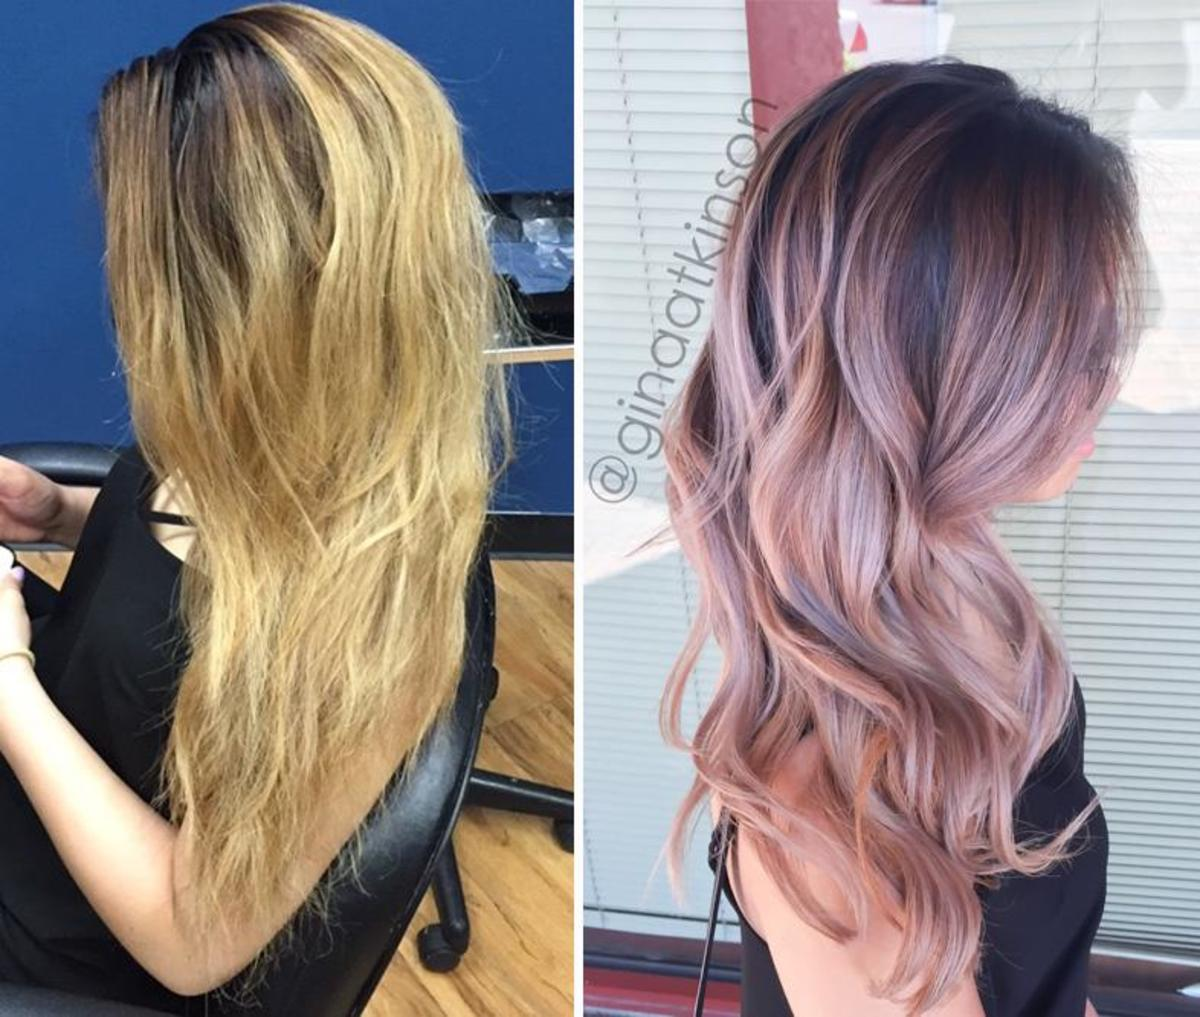 Diy Hair What Is Toner And How Does It Work Bellatory Fashion And Beauty